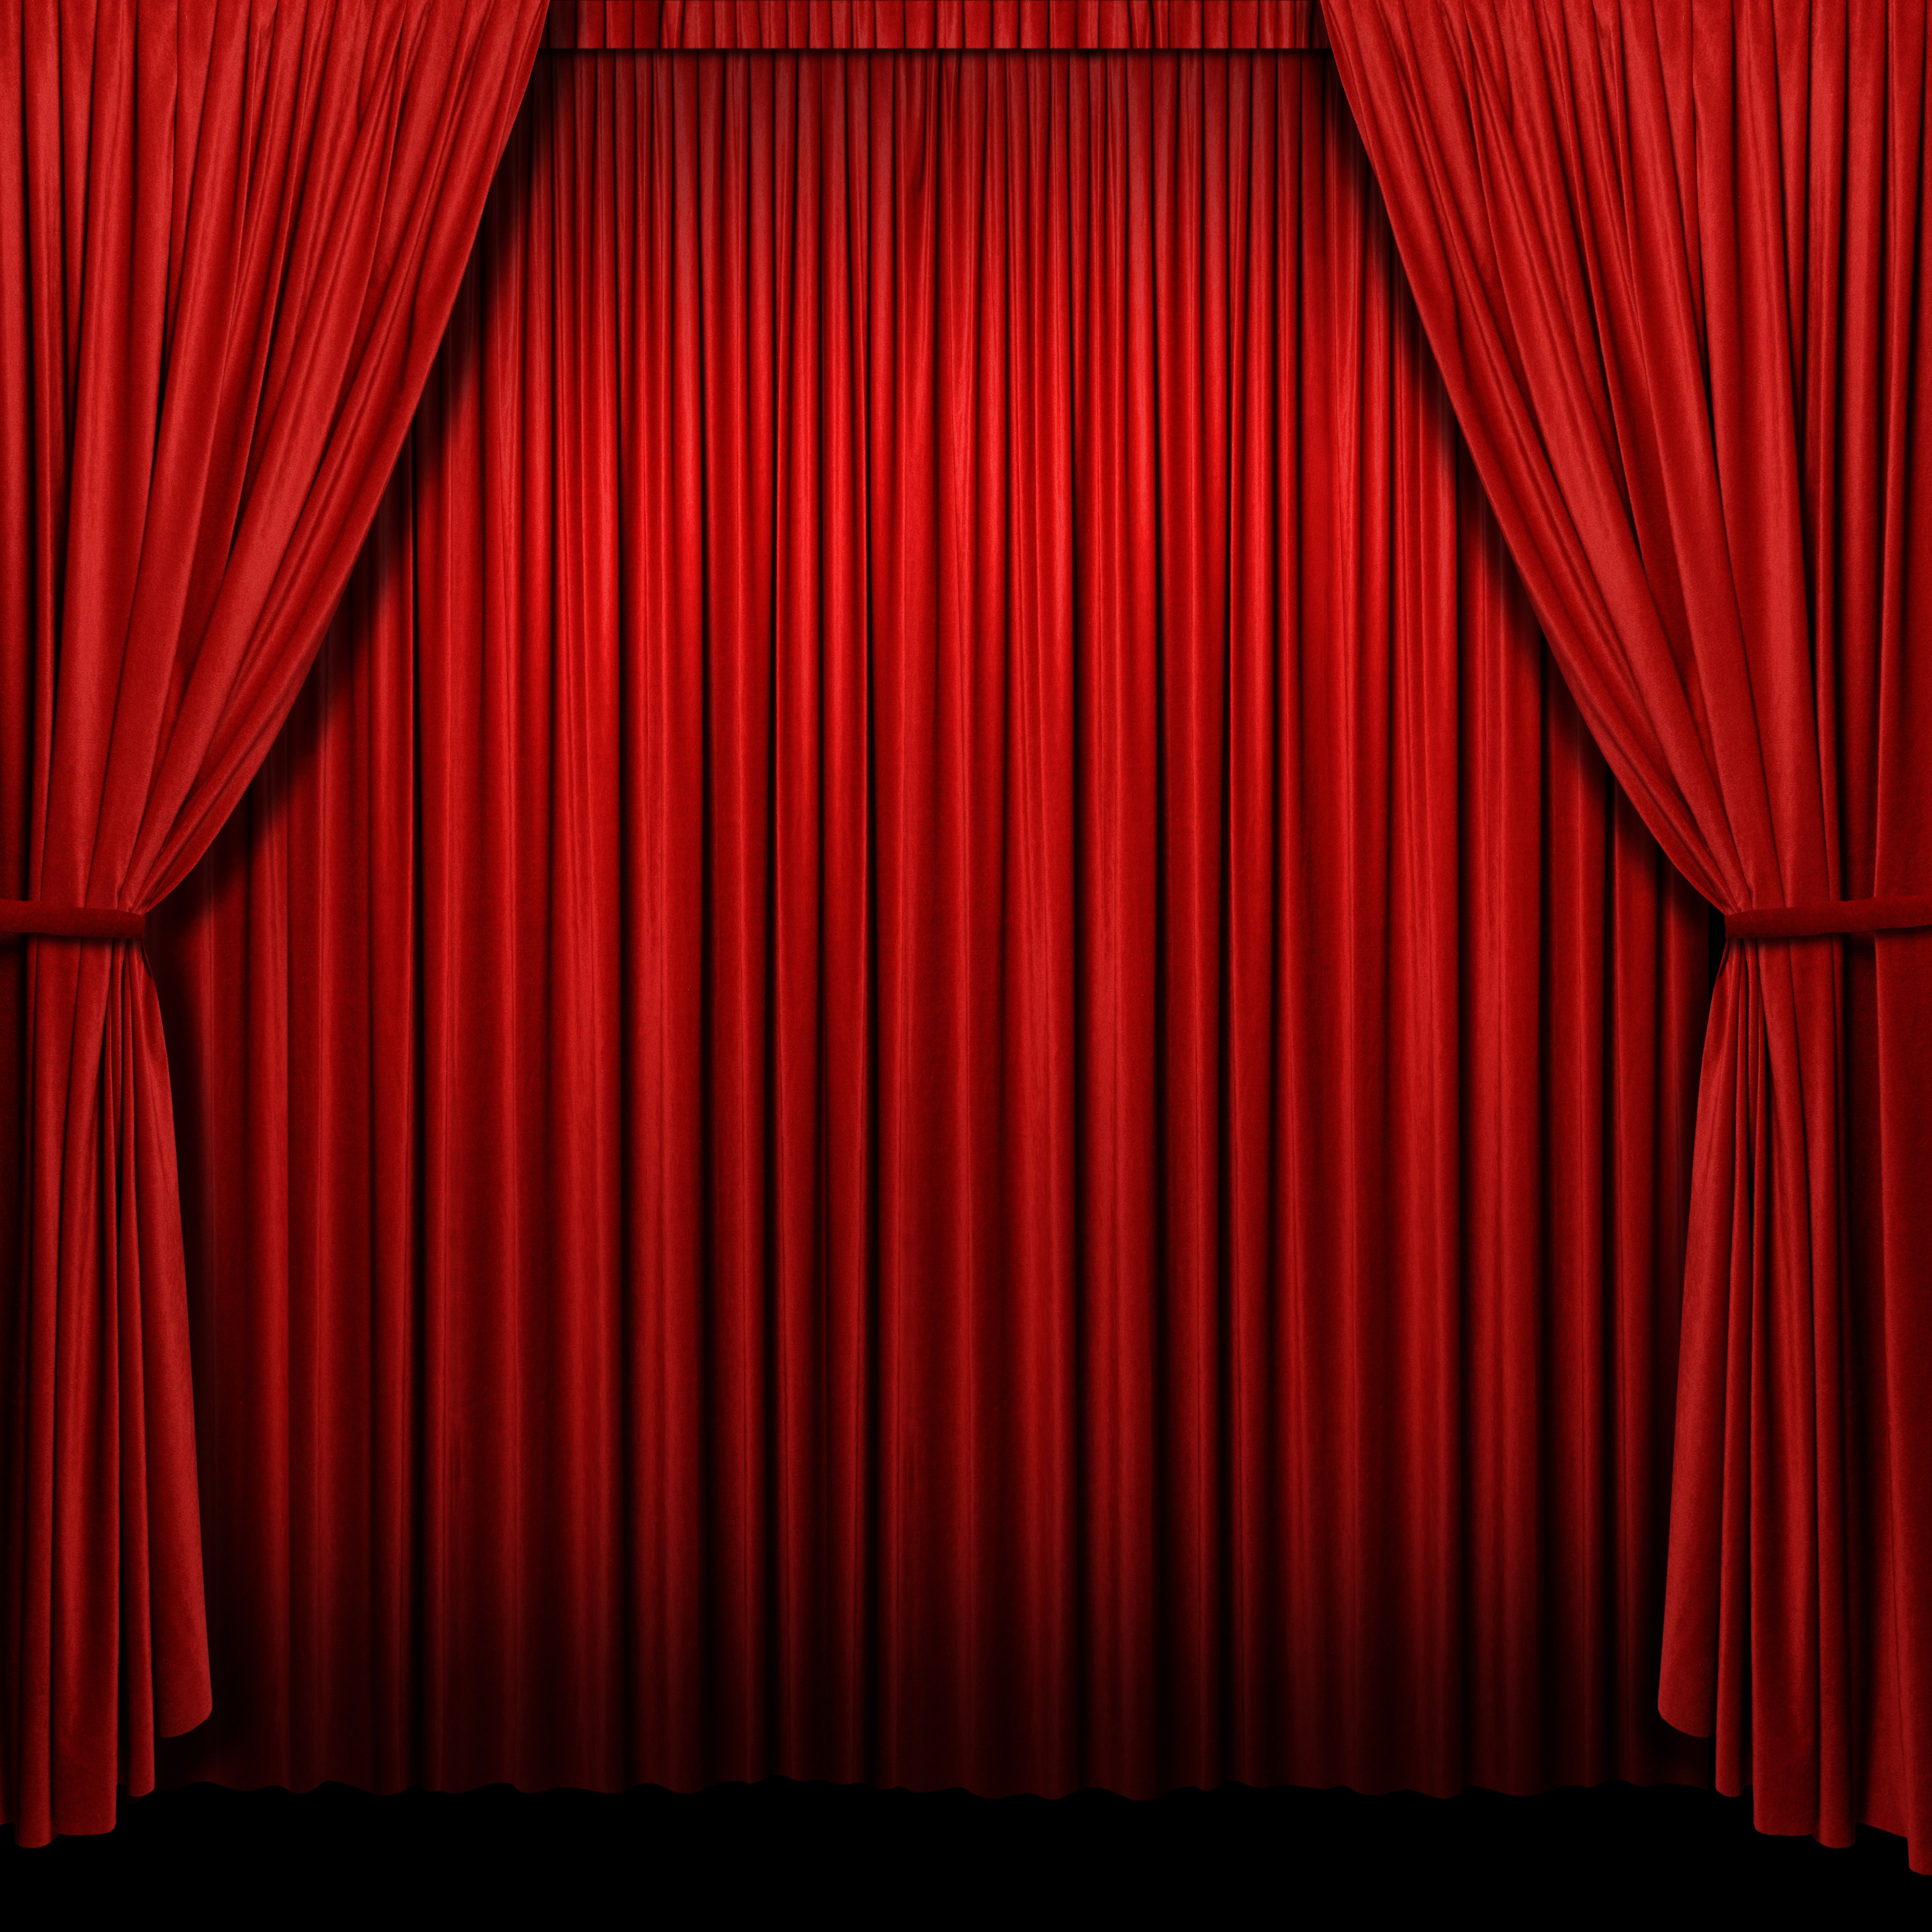 Red Curtain Stage Background Red Curtain Stage